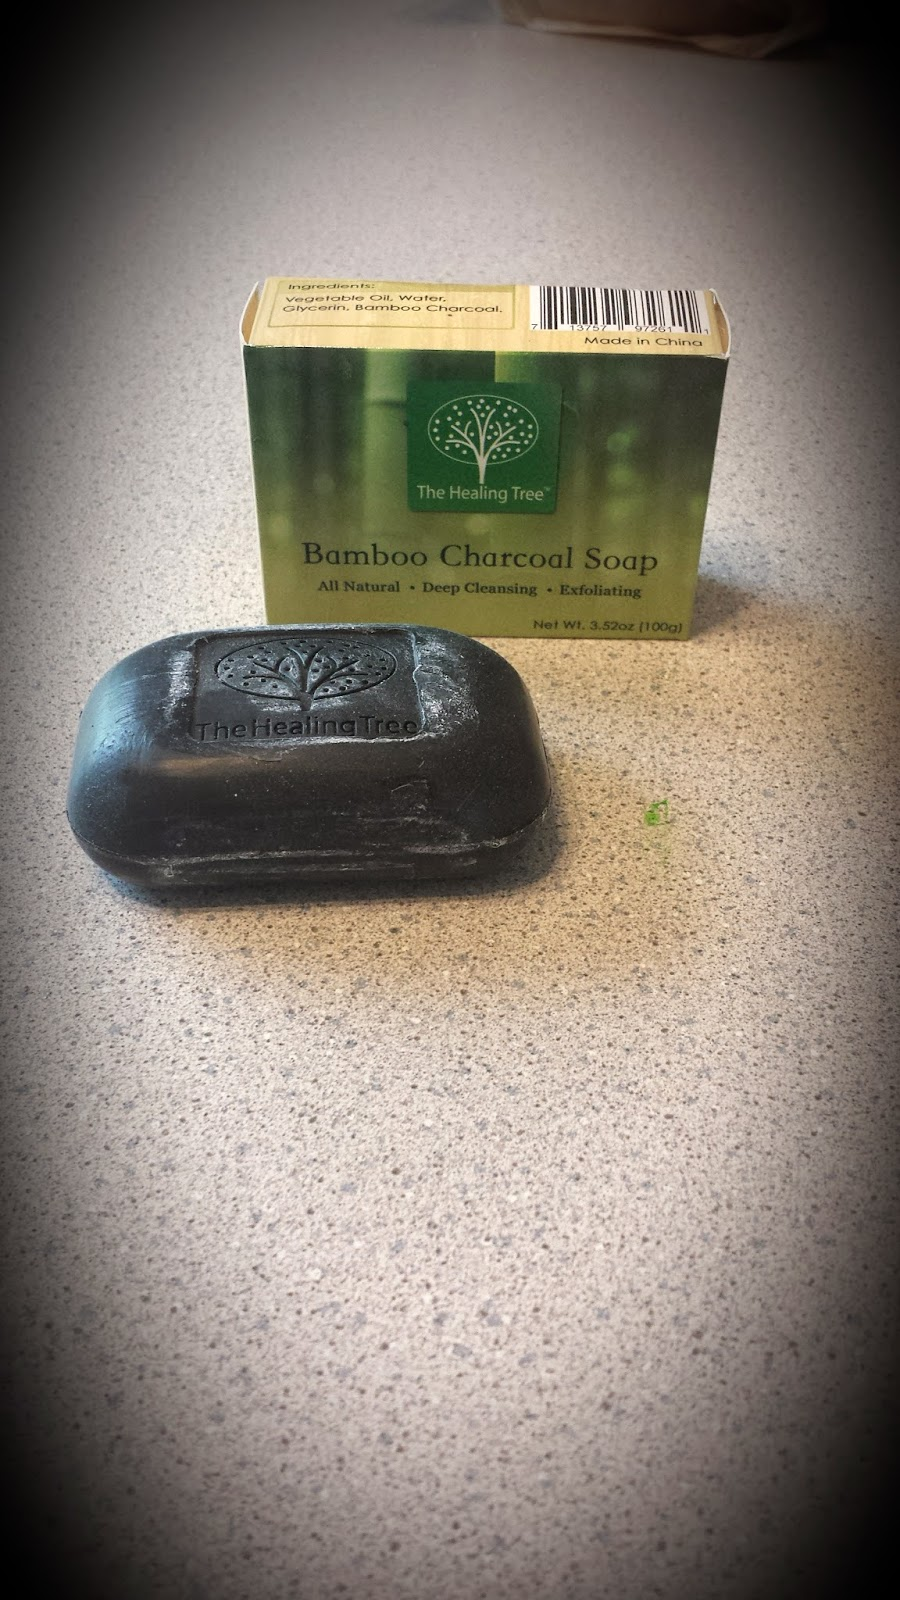 Guest Post: Healing Tree Bamboo Charcoal Soap Review & Giveaway - 5/29